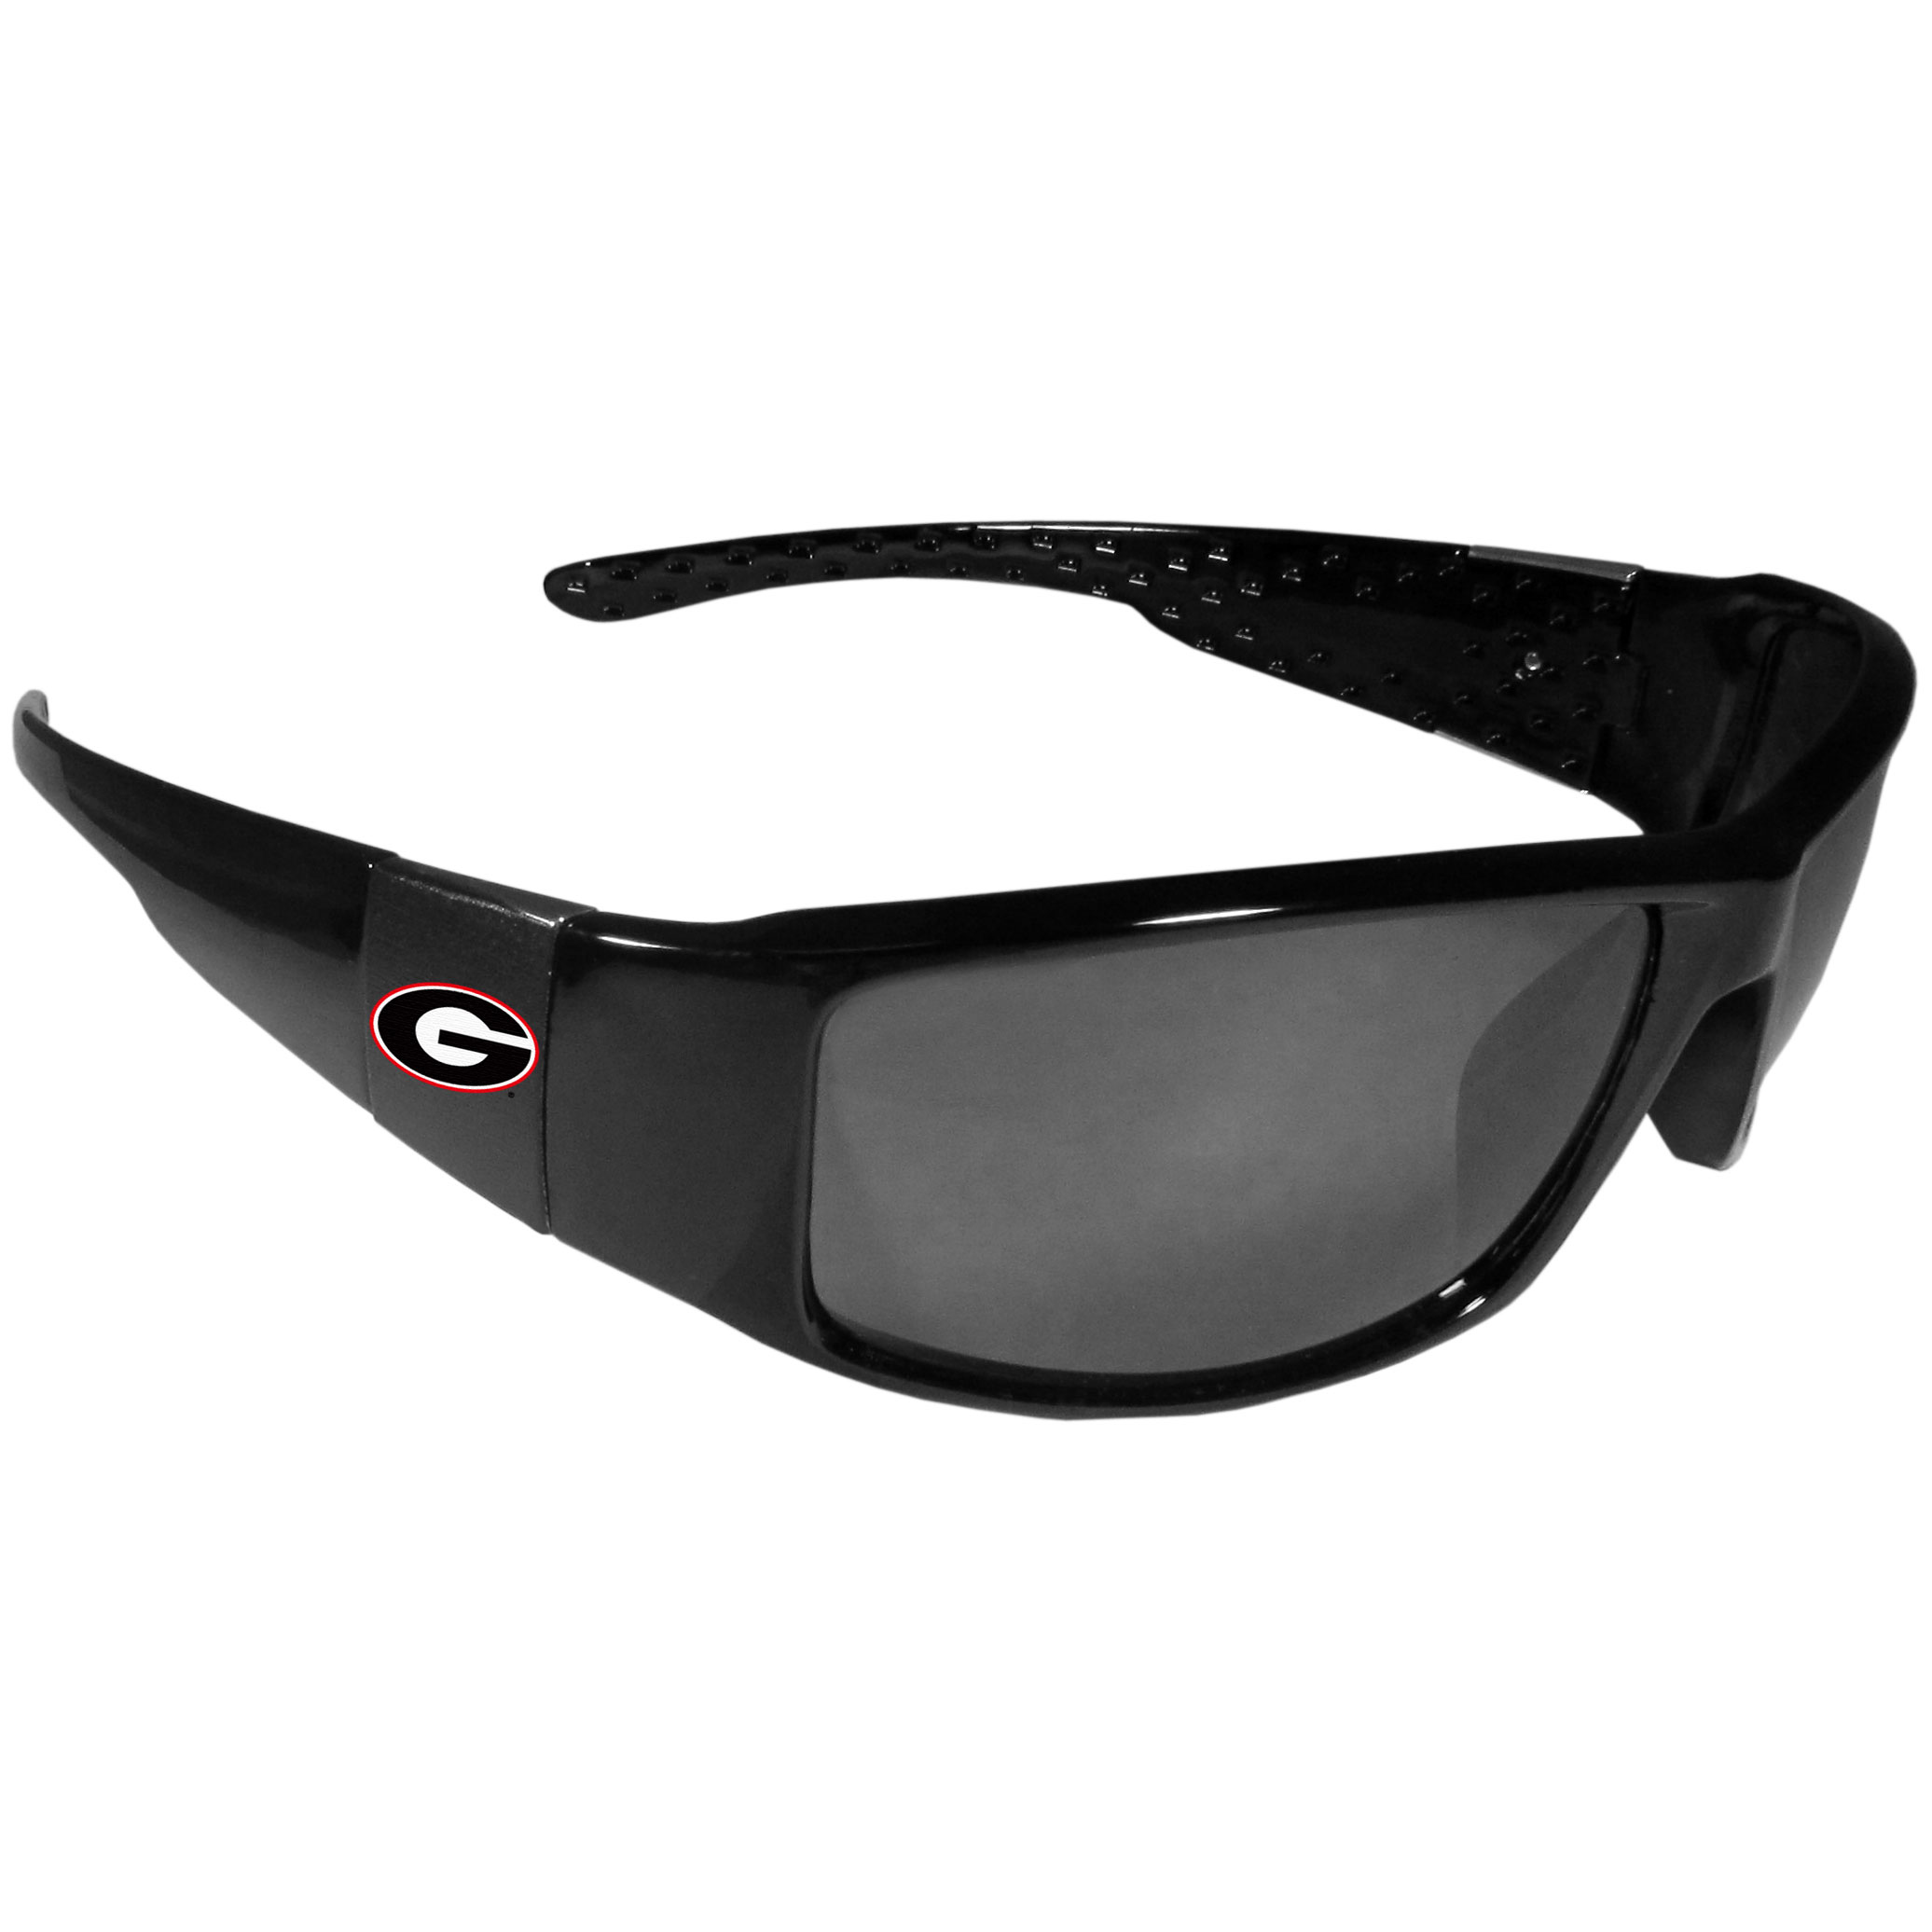 Georgia Bulldogs Black Wrap Sunglasses - These designer inspired frames have a sleek look in all black with  Georgia Bulldogs shields on each arm with a printed logo. The shades are perfect for any outdoor activity like; golfing, driving, hiking, fishing or cheering on the team at a tailgating event or at a home game day BBQ with a lens rating of 100% UVA/UVB for maximum UV protection. The high-quality frames are as durable as they are fashionable and with their classic look they are the perfect fan accessory that can be worn everyday for every occasion.